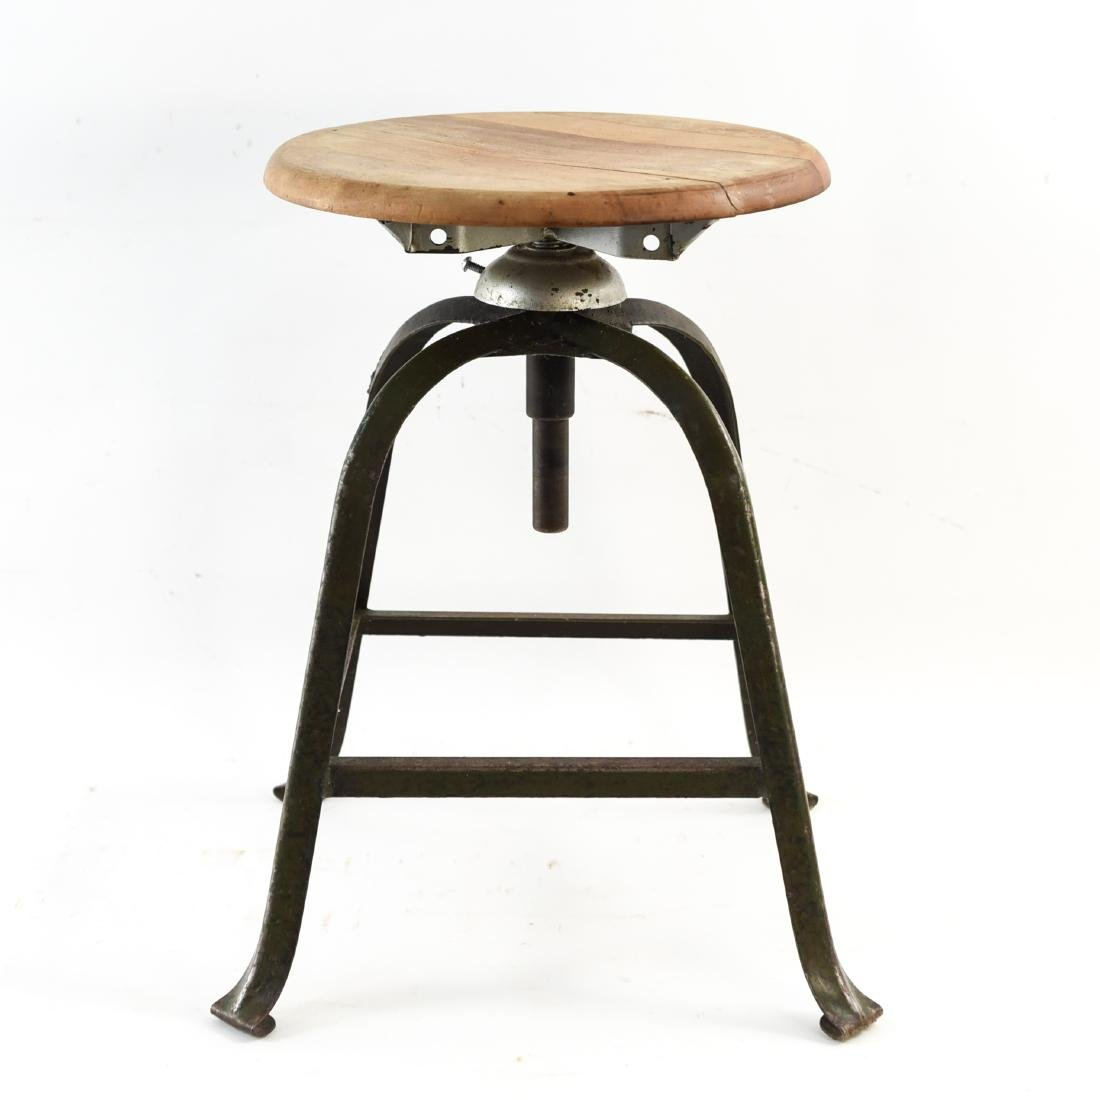 INDUSTRIAL IRON AND WOOD SWIVEL STOOL